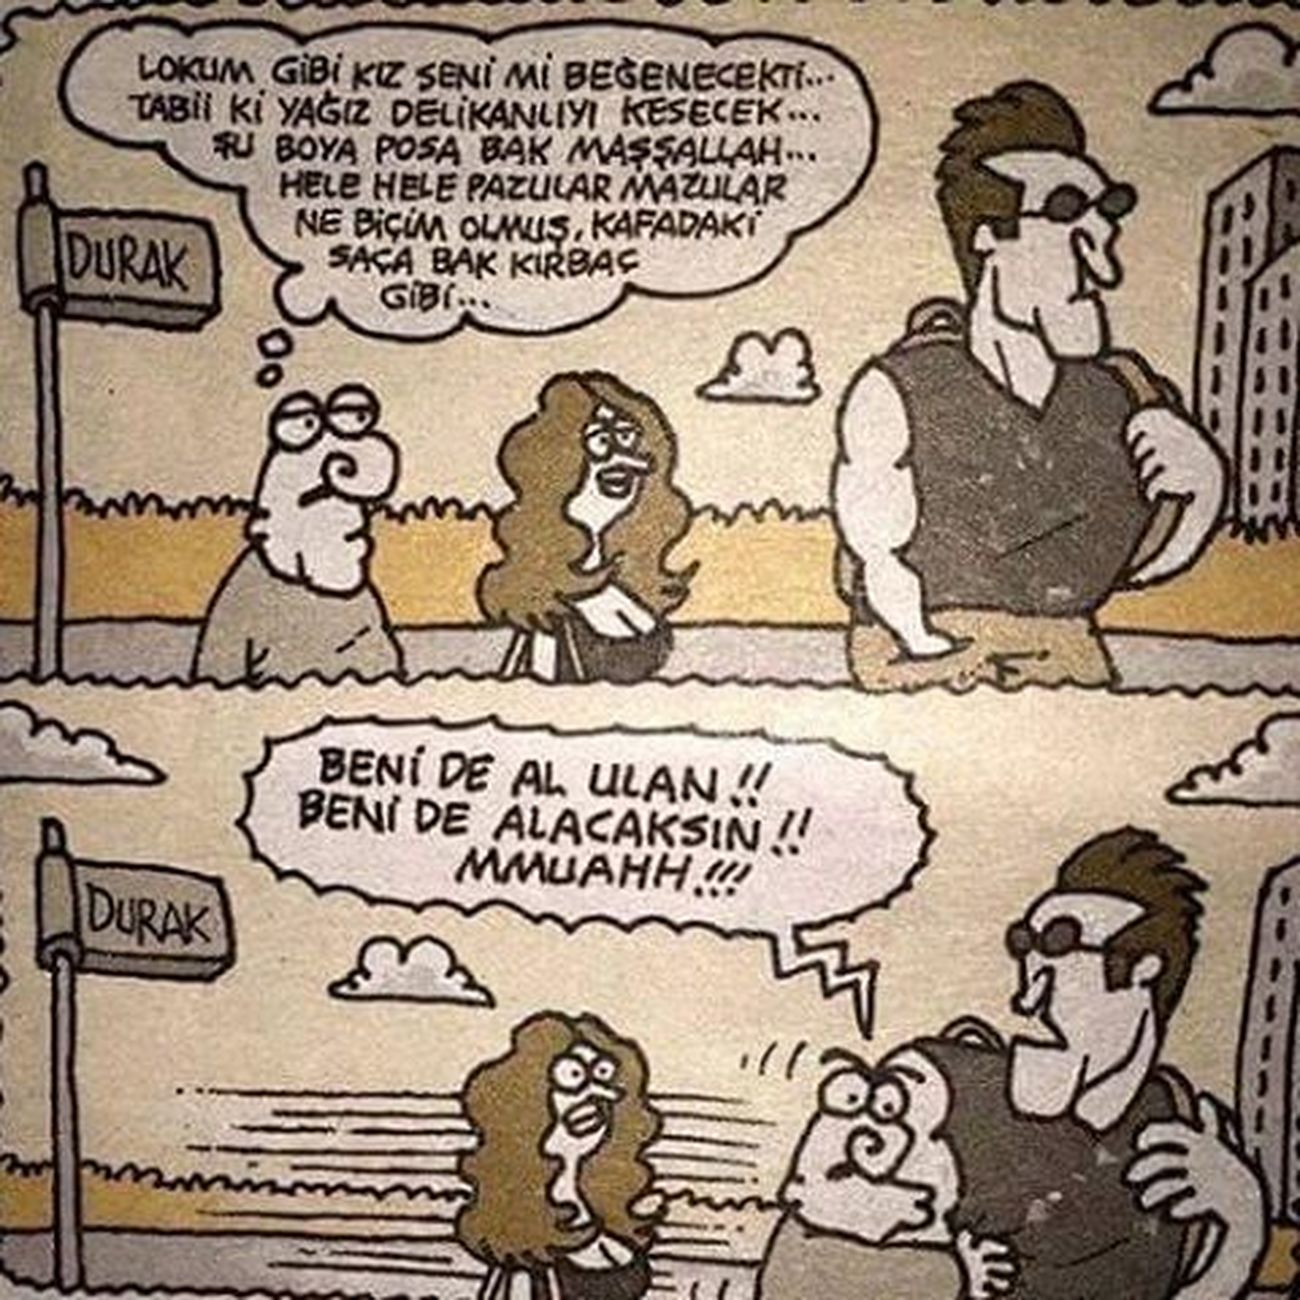 😁😁😁😃😆😆Sapitti😁😁😁😃😃😃😃 Komik Karikatur Karikatur Mizah Eğlence Eglenceli Komedi Penguen Girgir Uykusuz Caps Istanbul Fun Funny Love Instagood Me TBT  Follow Cute Followme Happy Photooftheday Beautiful Girl like4like picoftheday photoremphin life